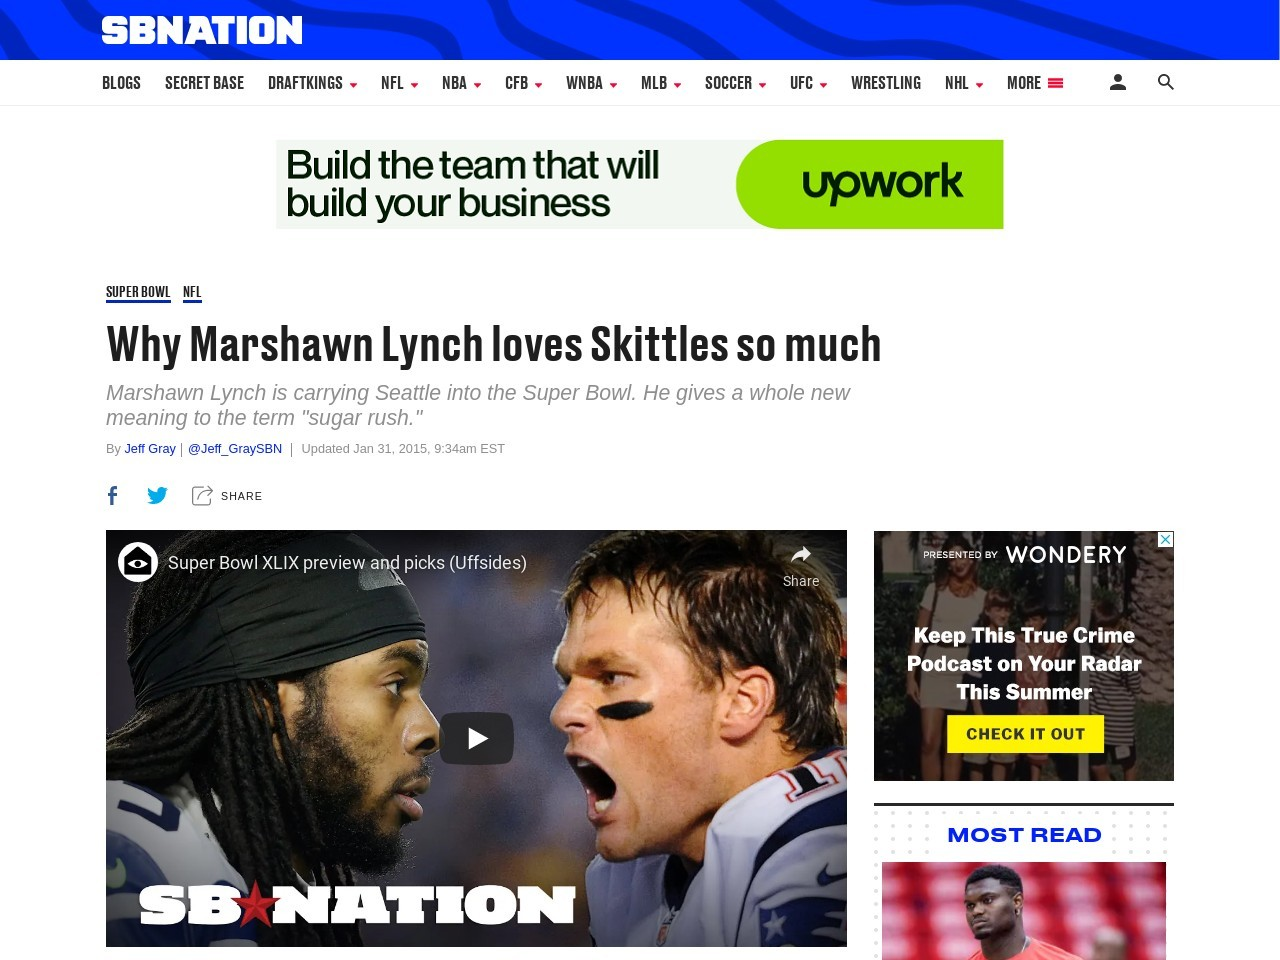 Why Marshawn Lynch loves Skittles so much